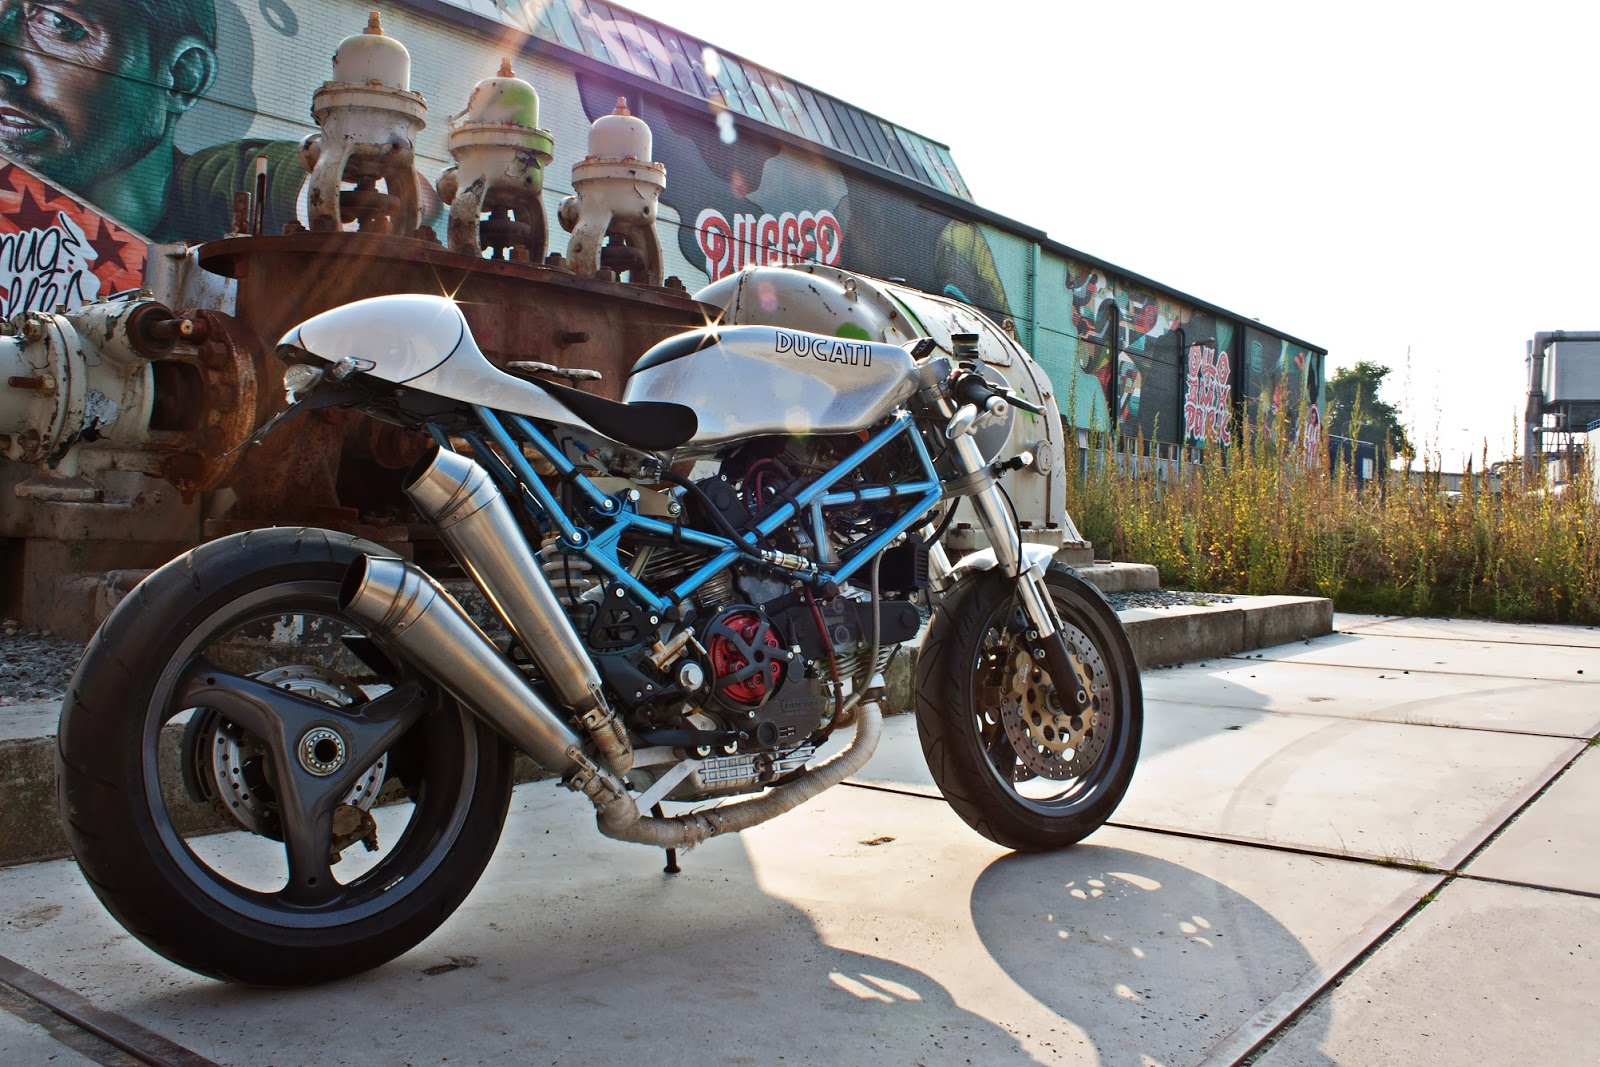 Ducati Monster 900 Cafe Racer by Mario Kusters 3